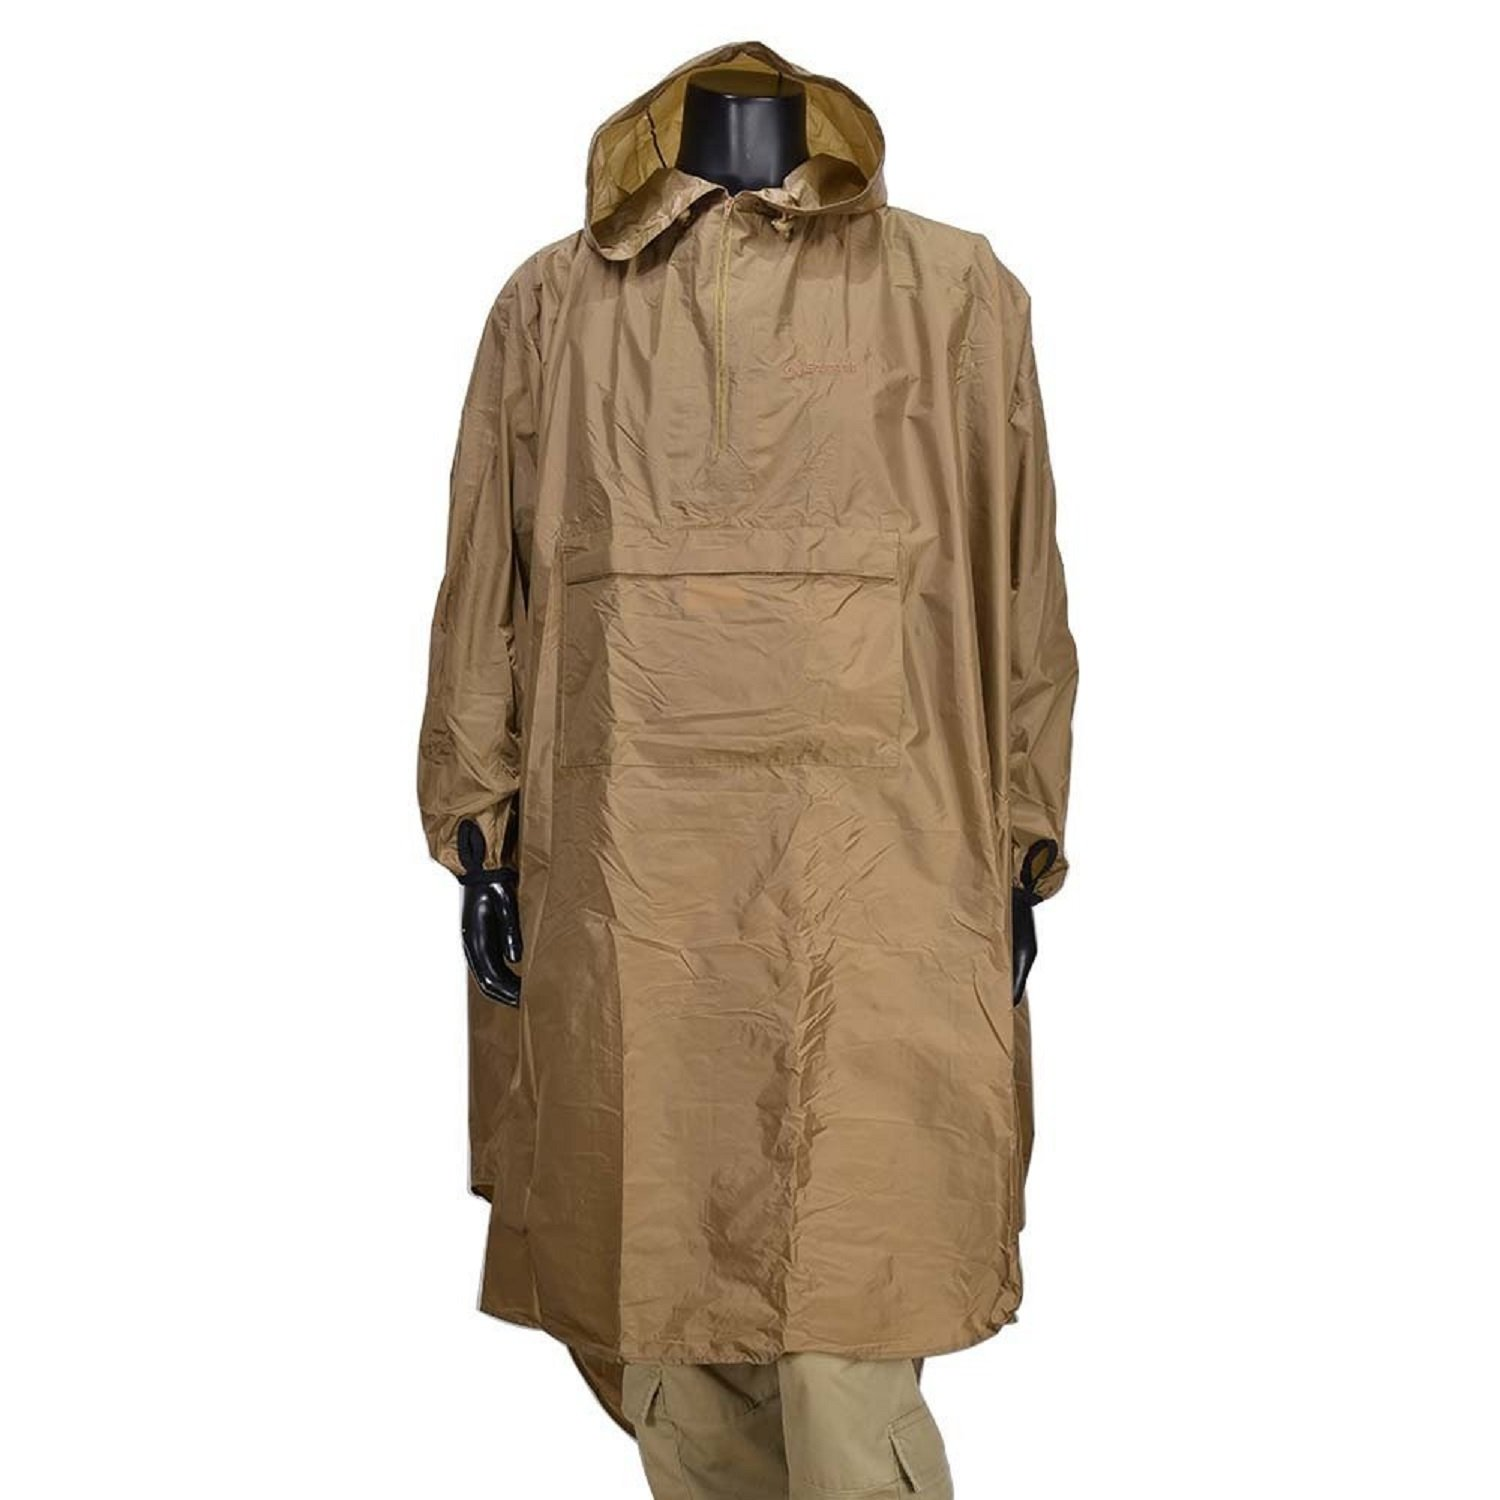 Snugpak Patrol Poncho, Waterproof, One Size, Lightweight, Suitable for Hiking, Camping, and Hunting, Coyote Tan by Snugpak